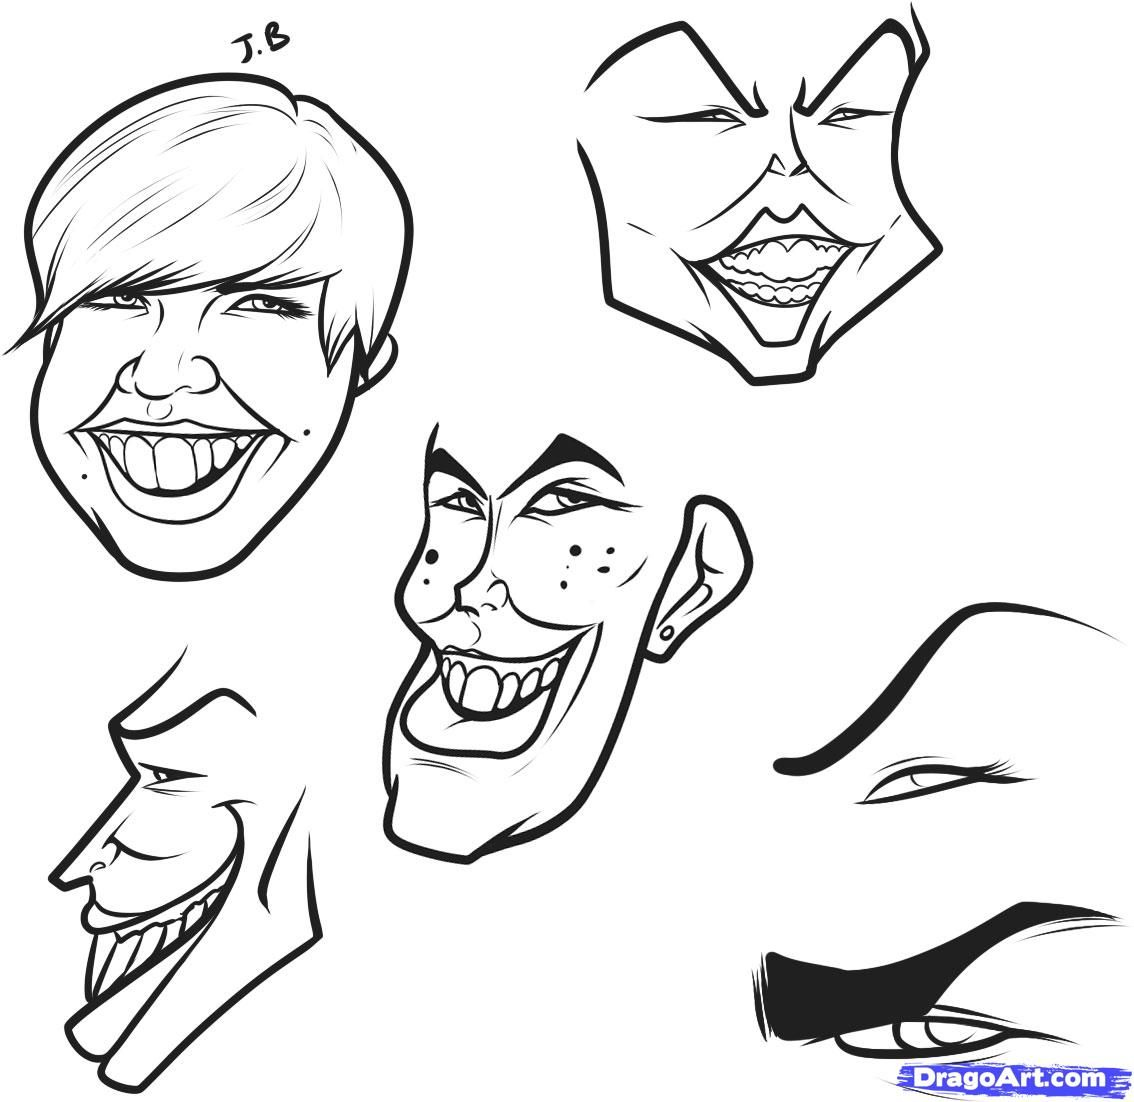 how to draw movie characters step by step how to draw anime characters step by step 30 examples by step how movie to draw characters step